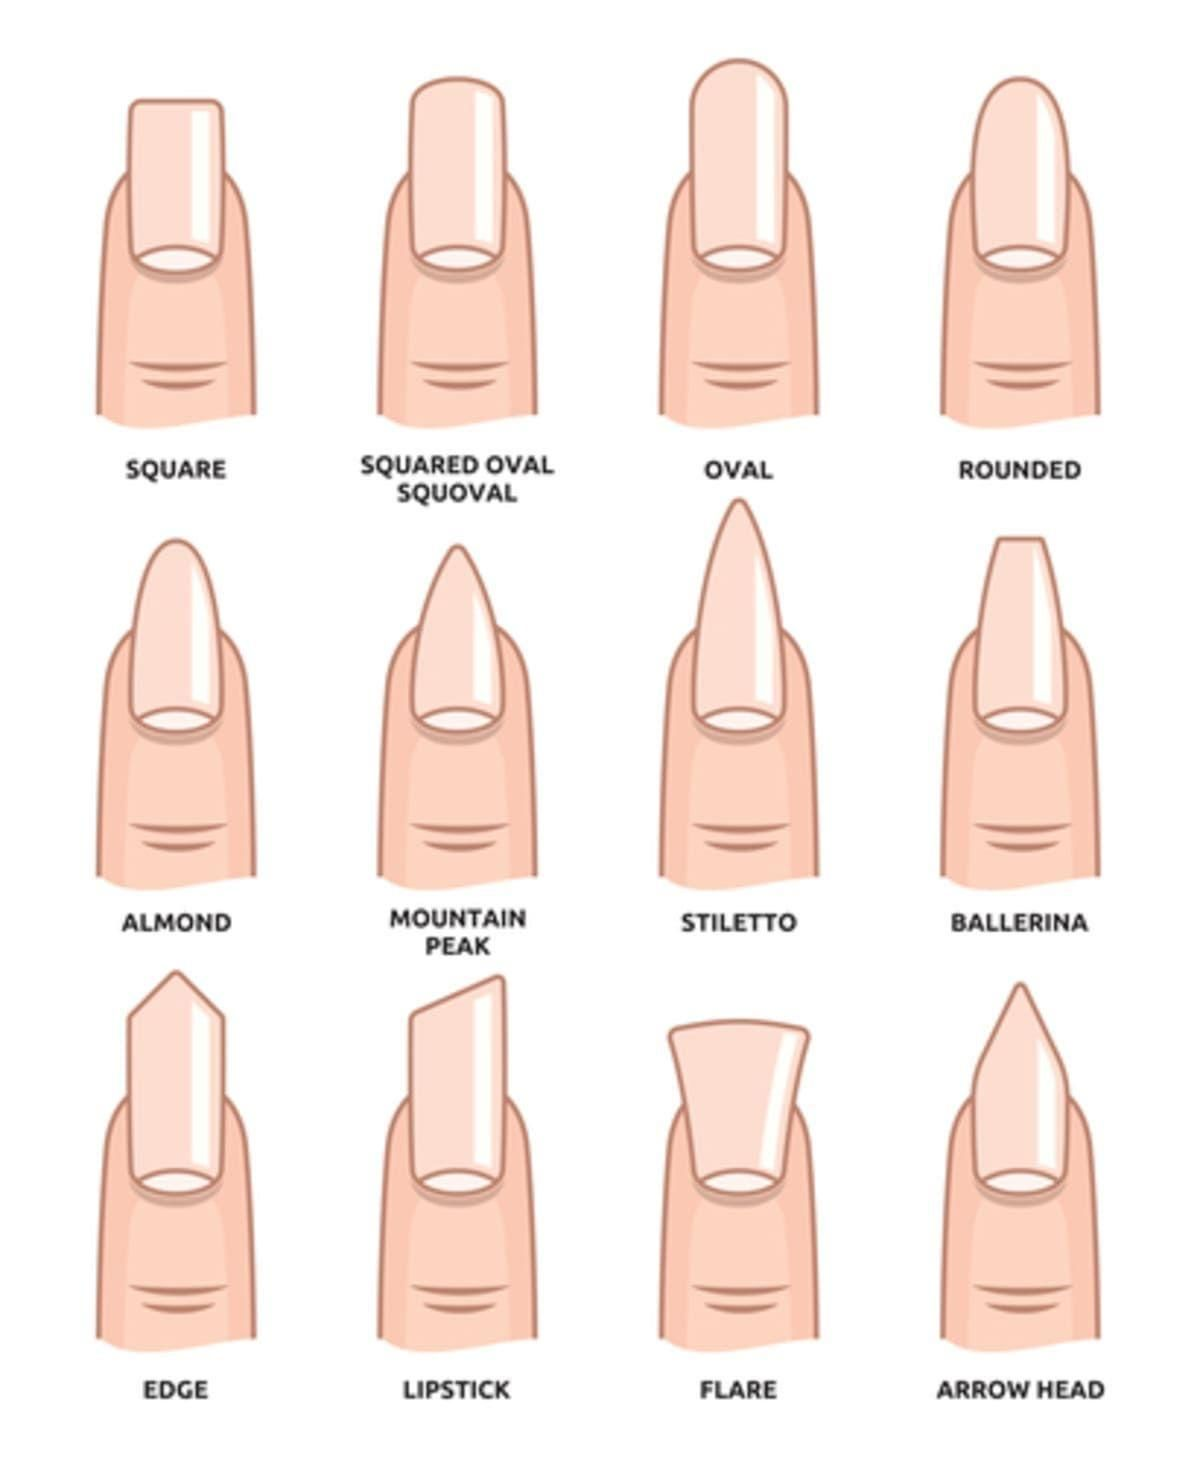 Nail shapes which nail shape suits me? Nails shapes